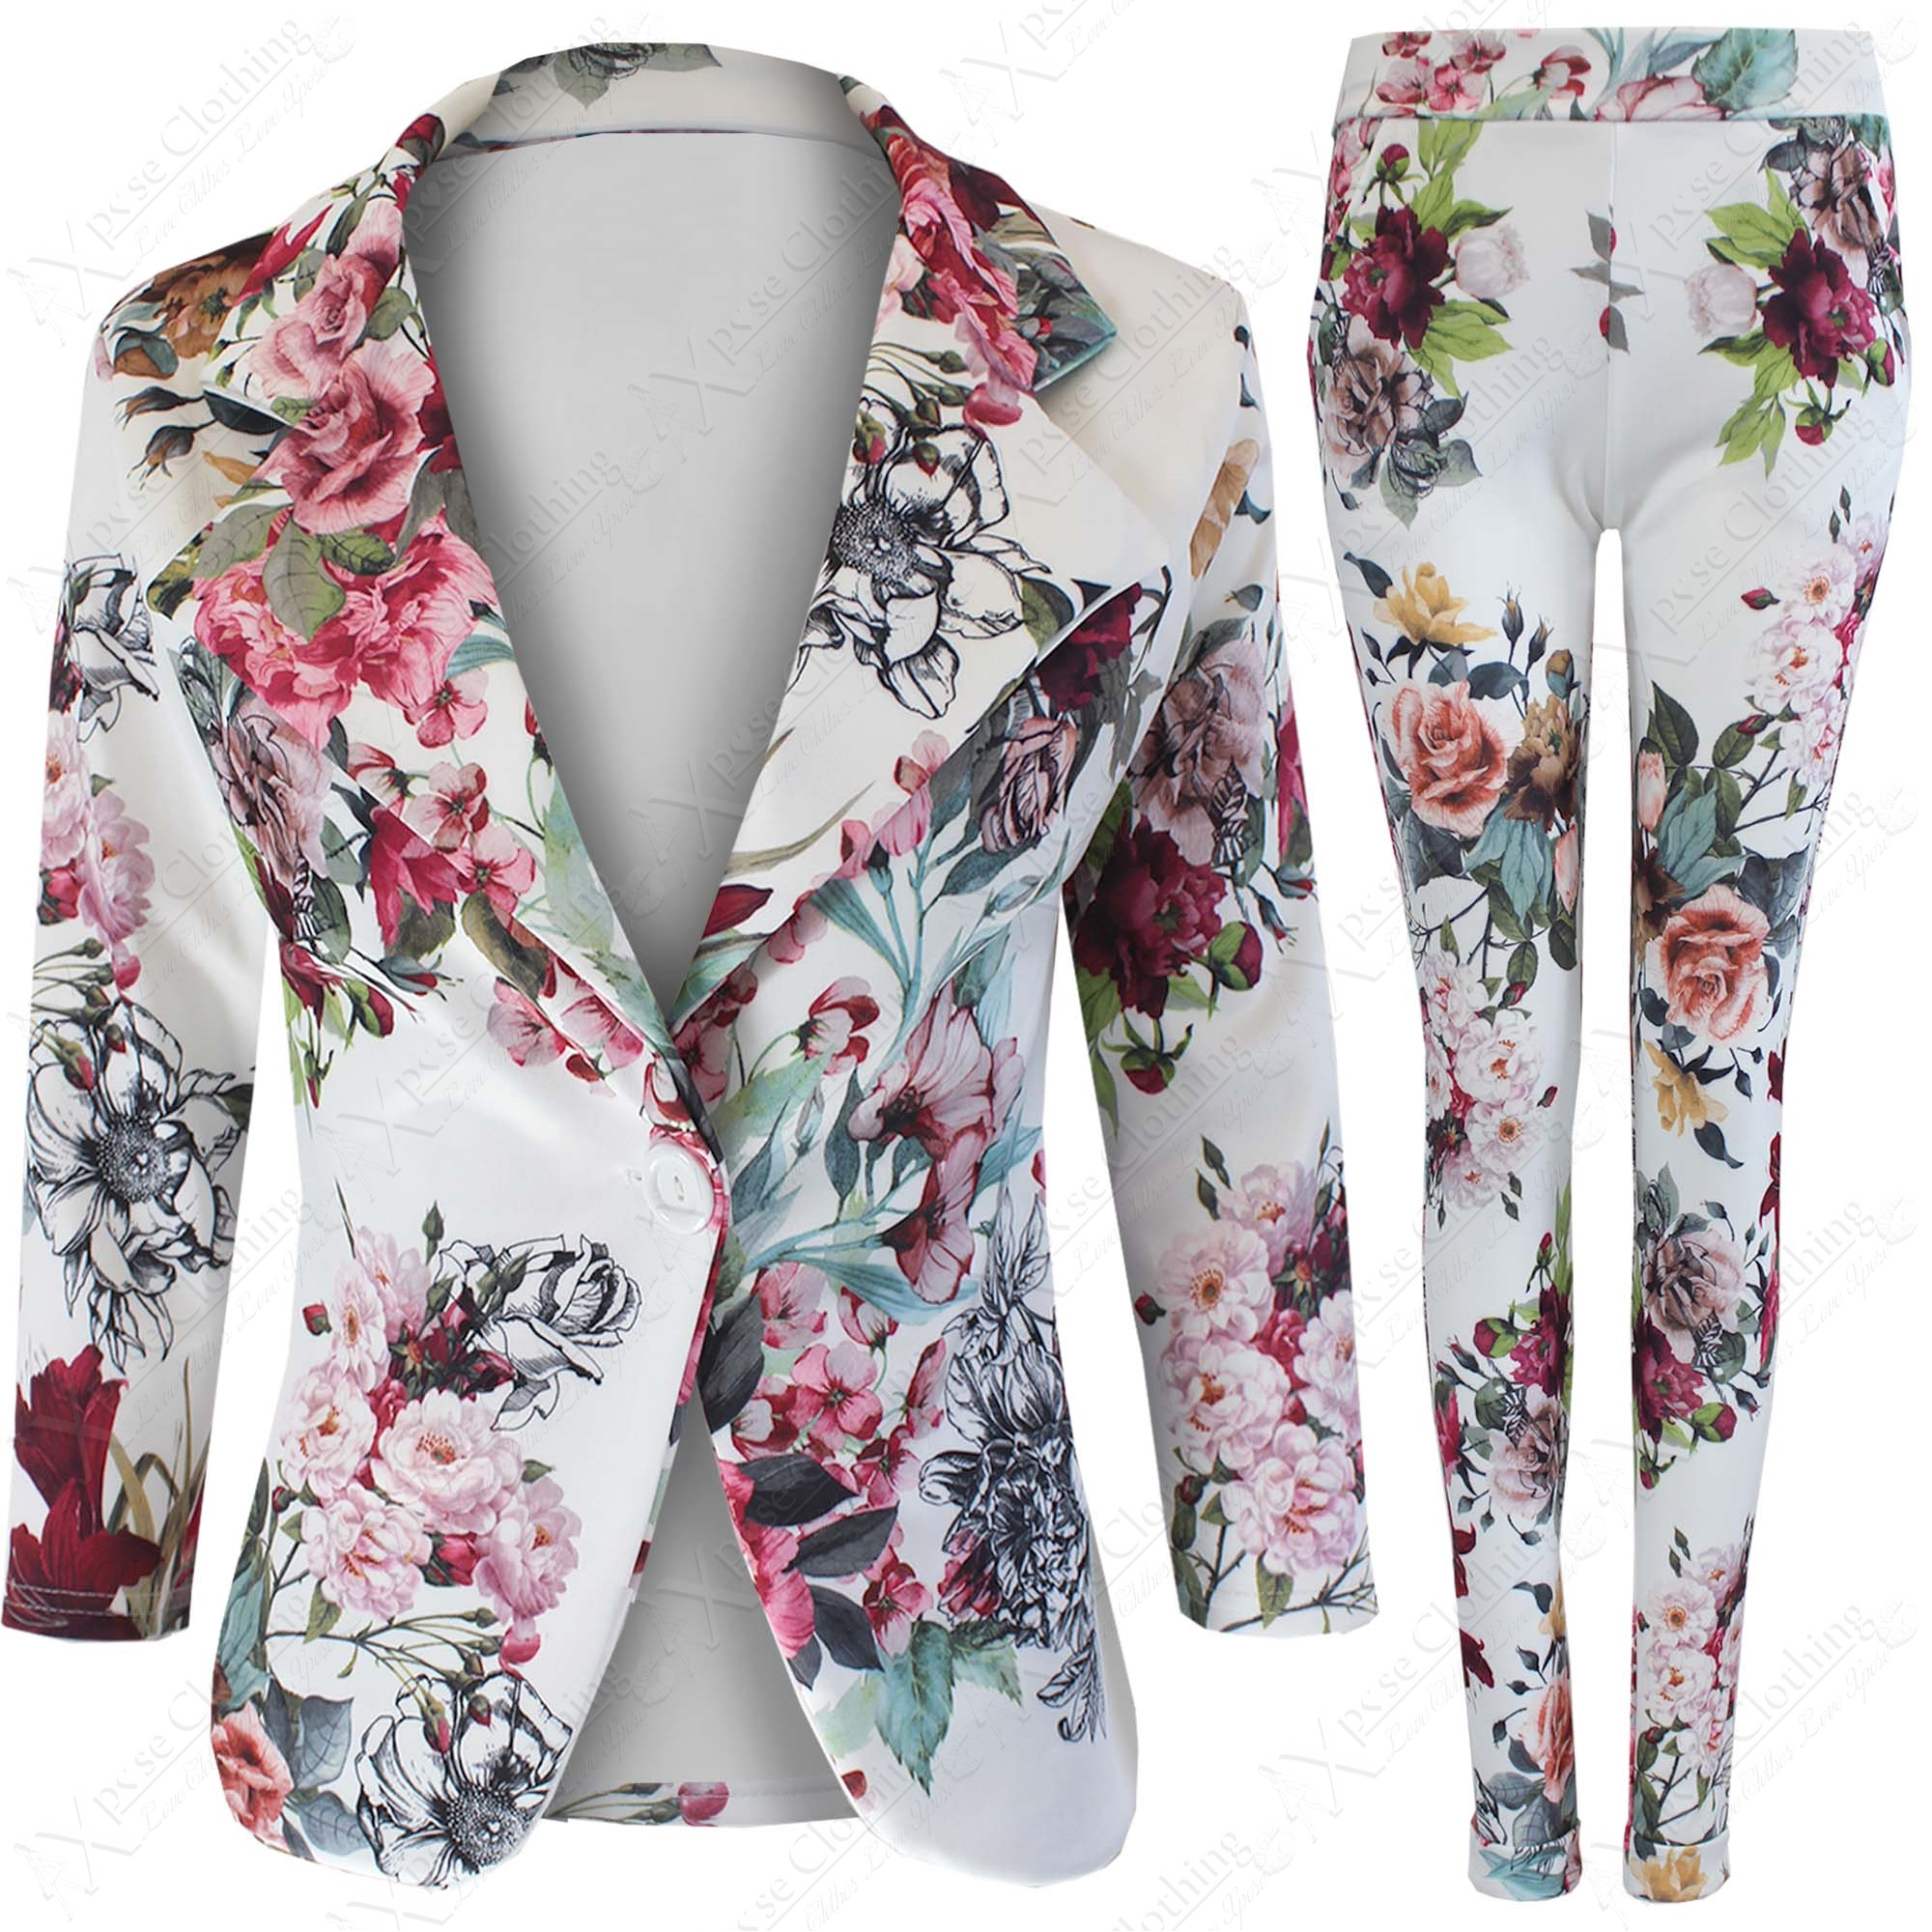 NEW LADIES FLORAL PRINT BLAZER TROUSERS SUIT WOMEN JACKETS TAPER ...